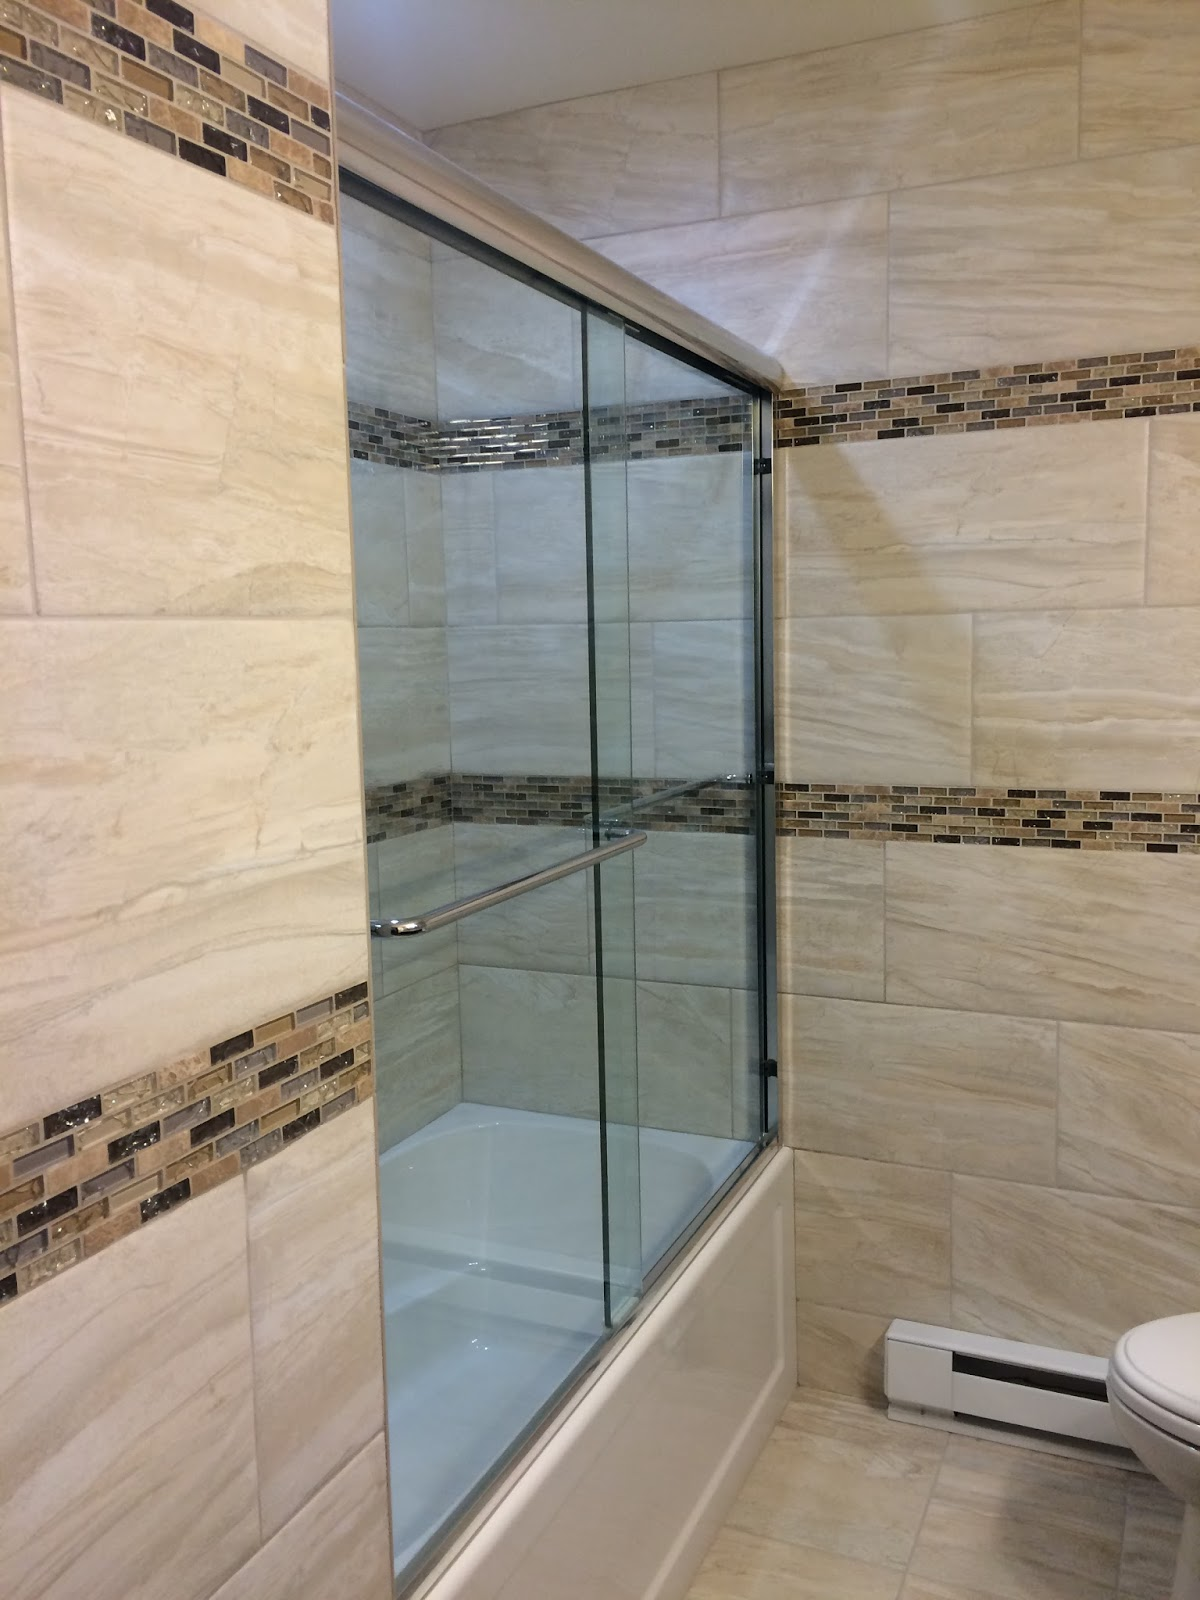 Custom Bathroom Remodeling: Large Format Tile Install w ...